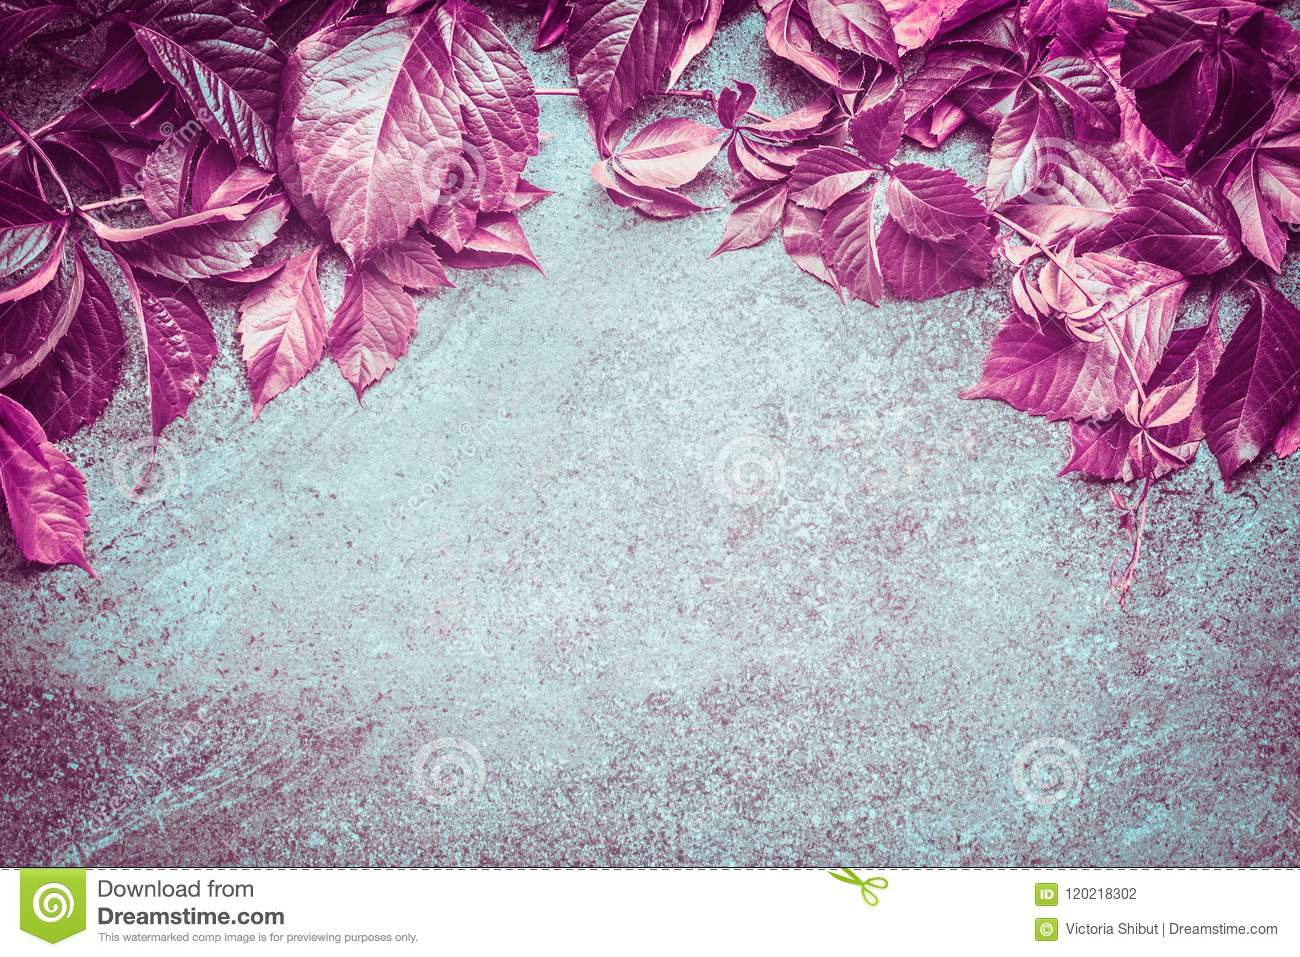 Beautiful pink autumn wild grapes leaves composing on dark vintage background, top view